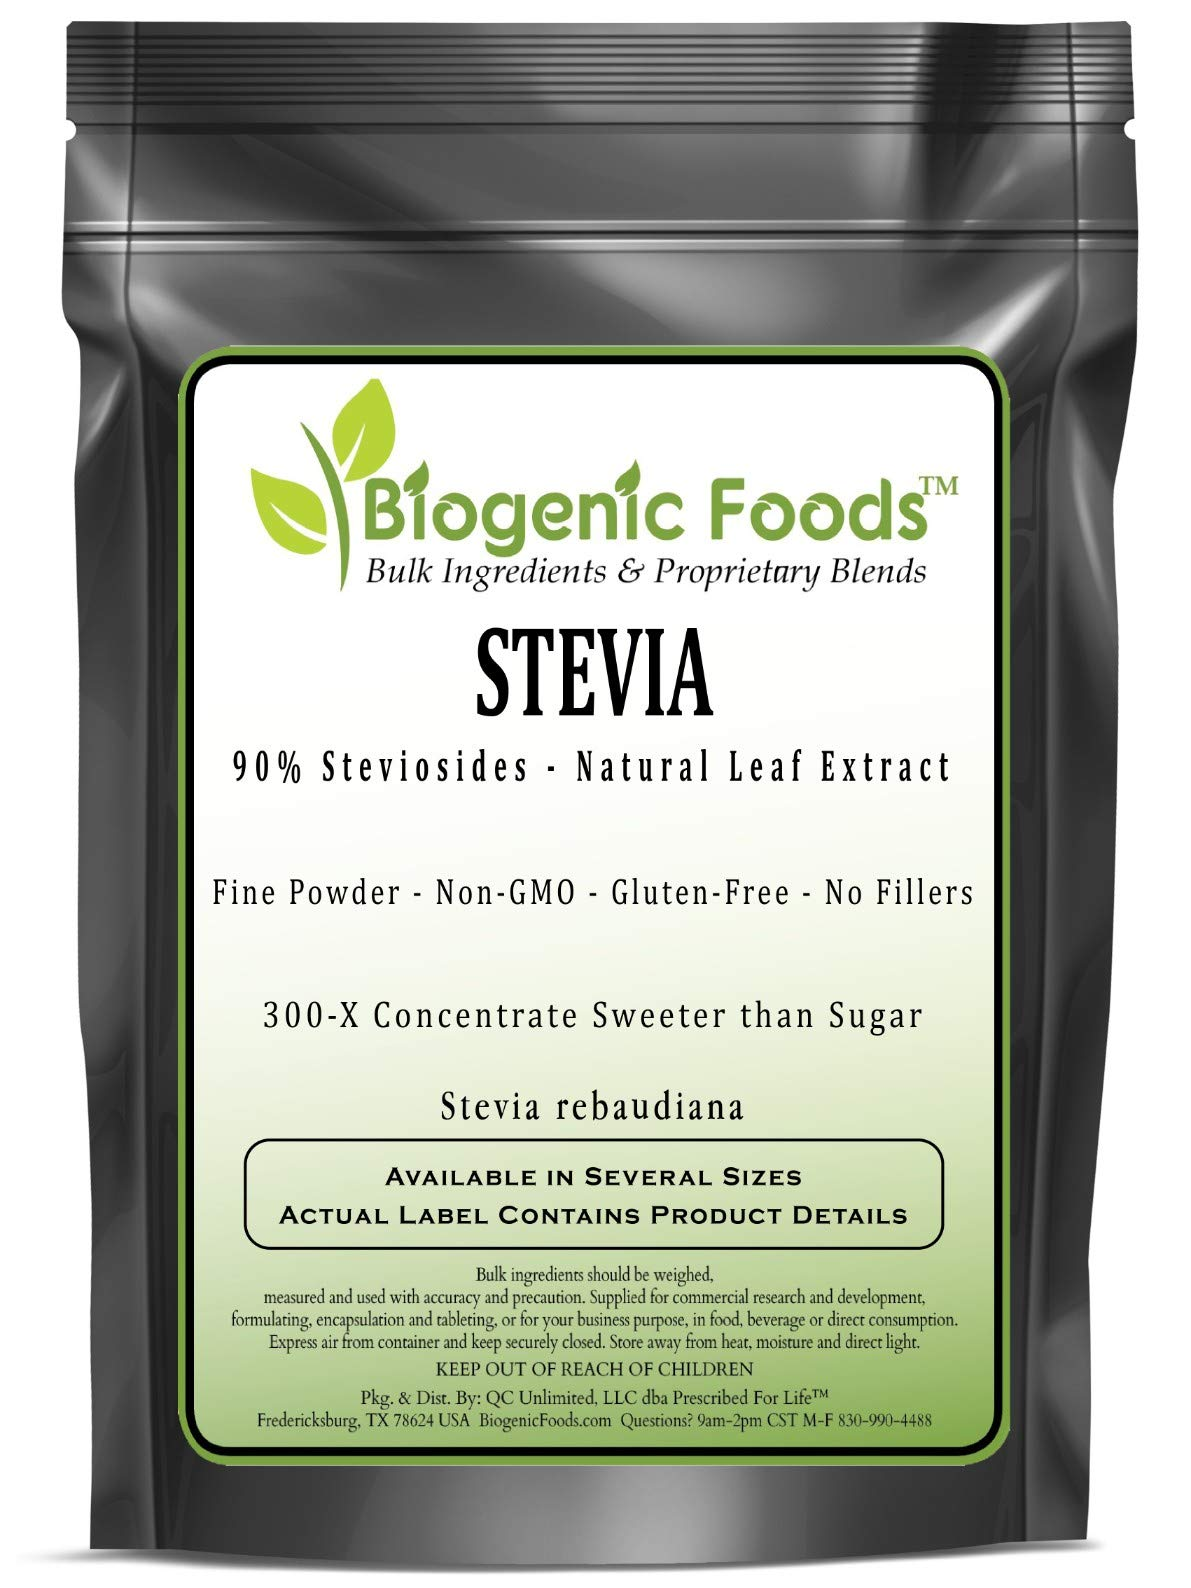 Stevia - 90% Steviosides - Natural Leaf Fine Powder Extract (Stevia rebaudiana), 2 kg